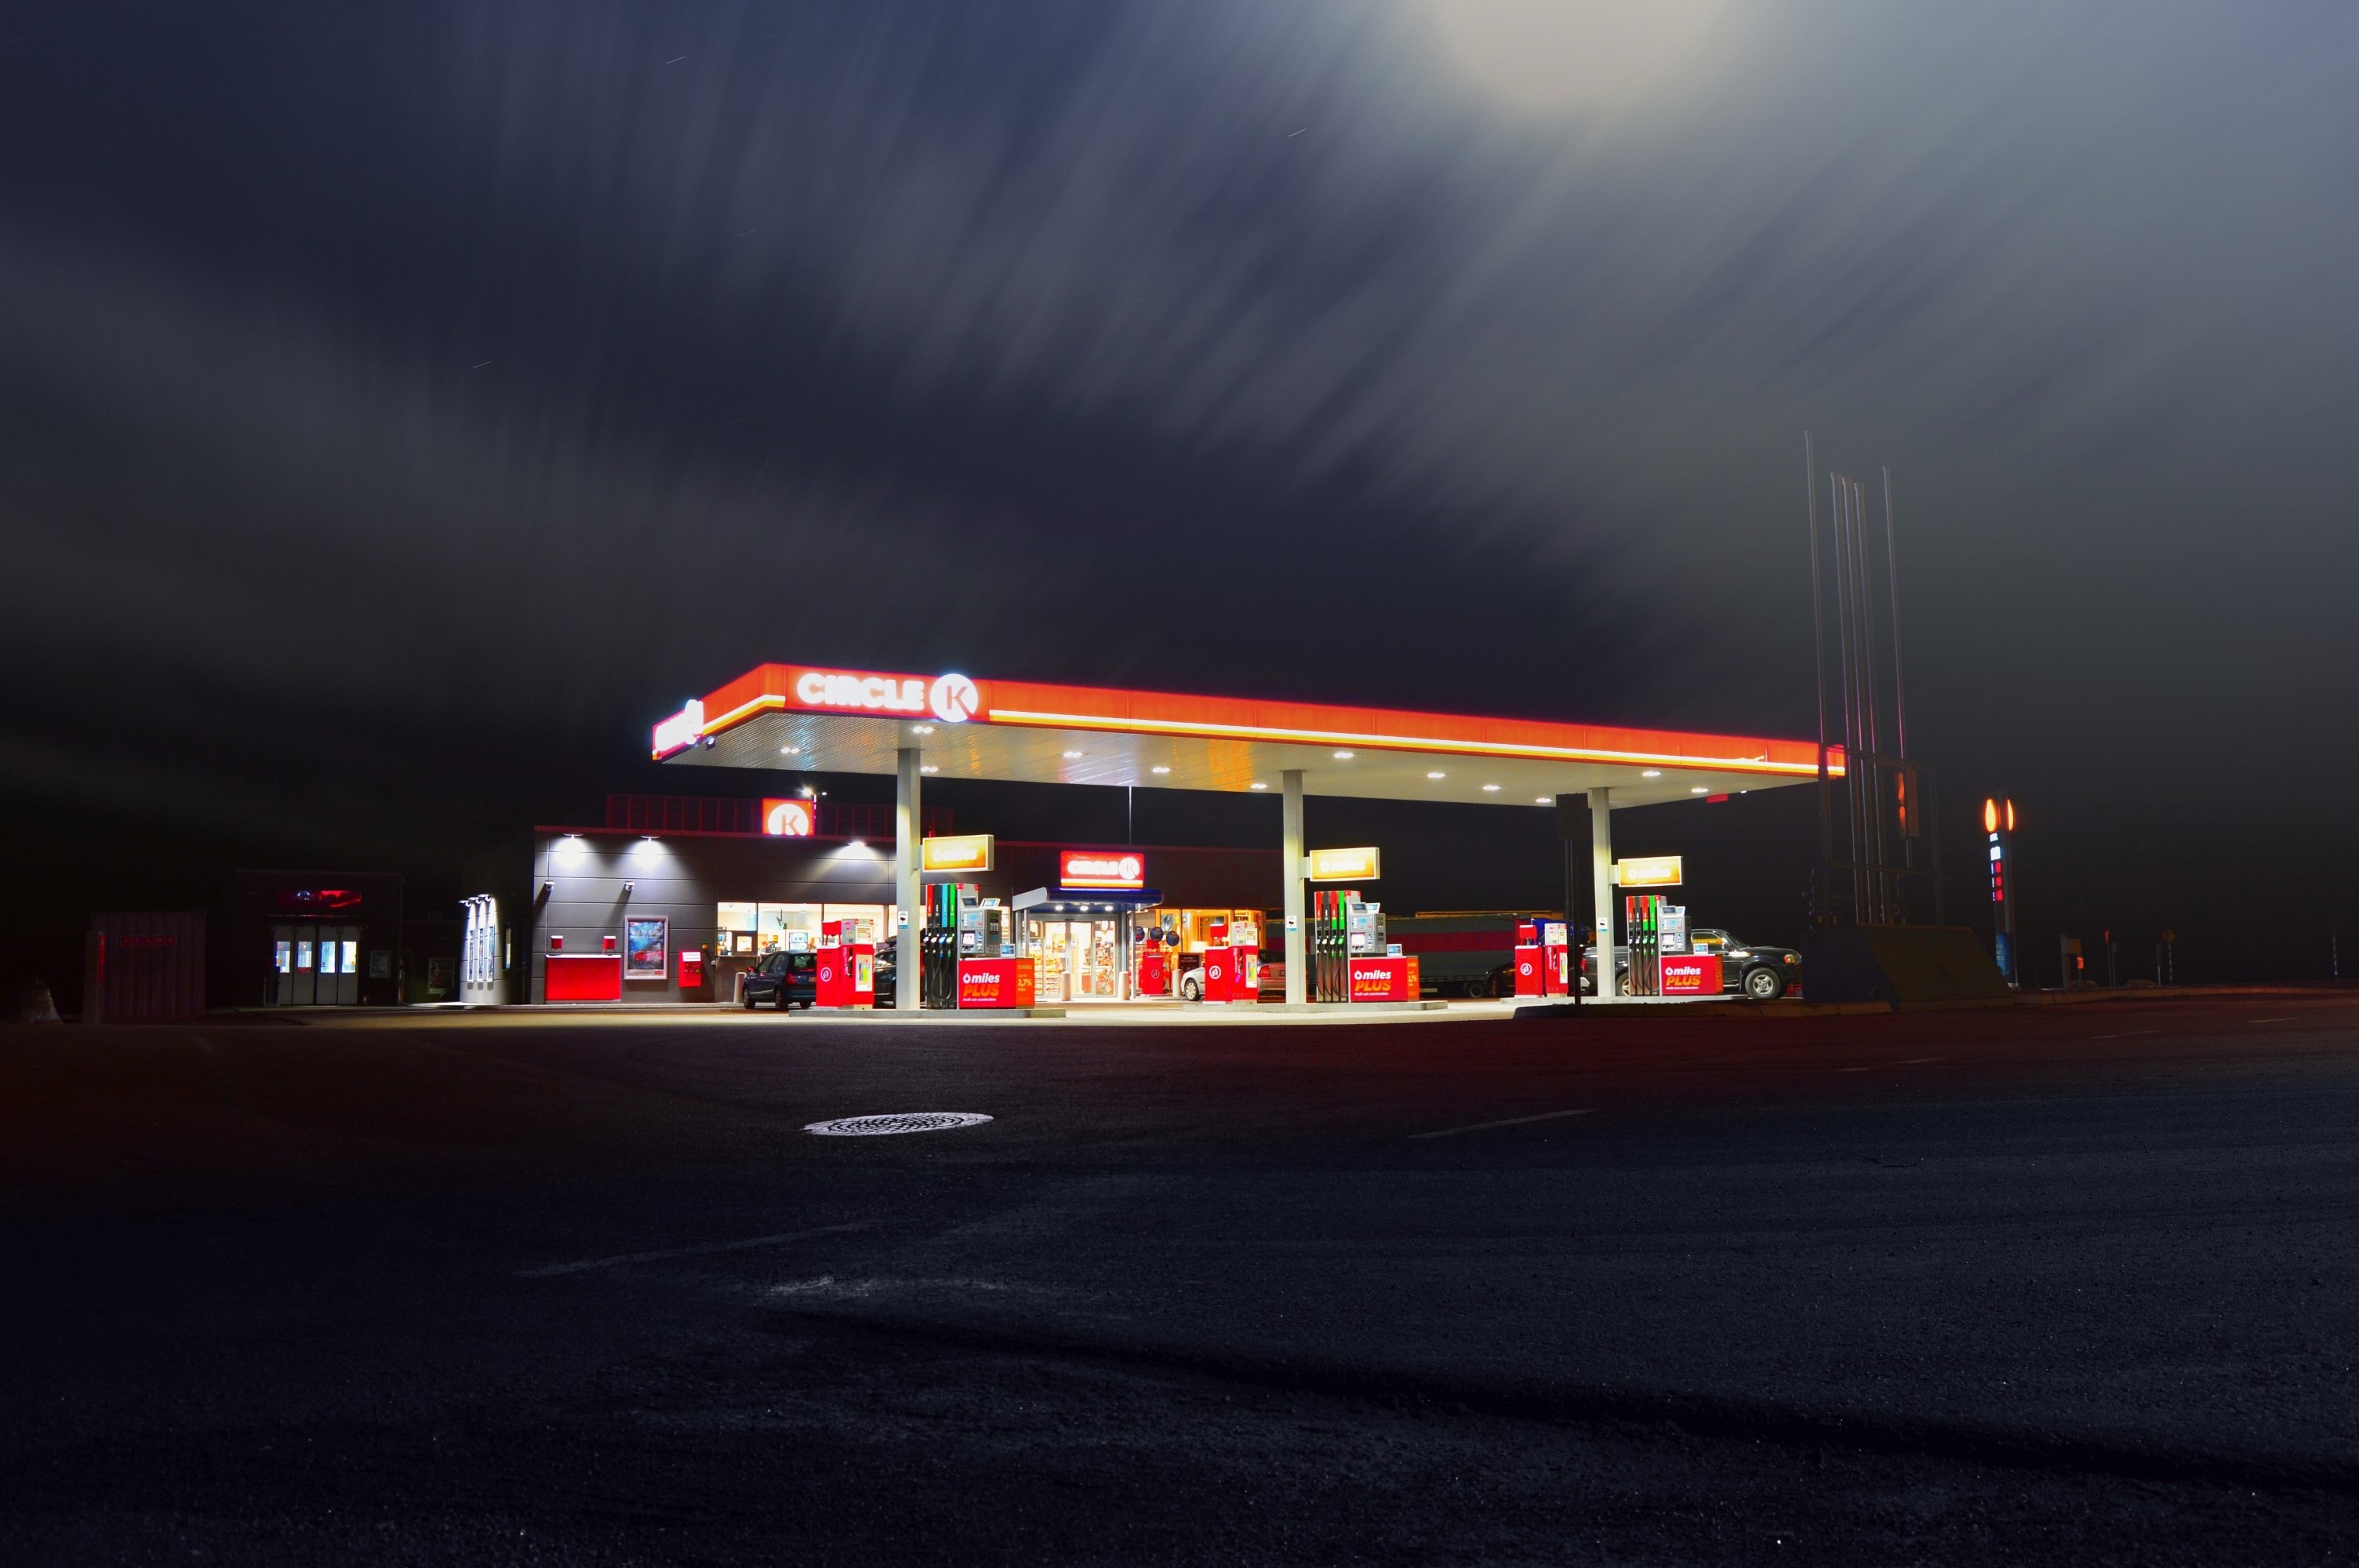 An overexposed gas station illuminated with a blurry night sky above